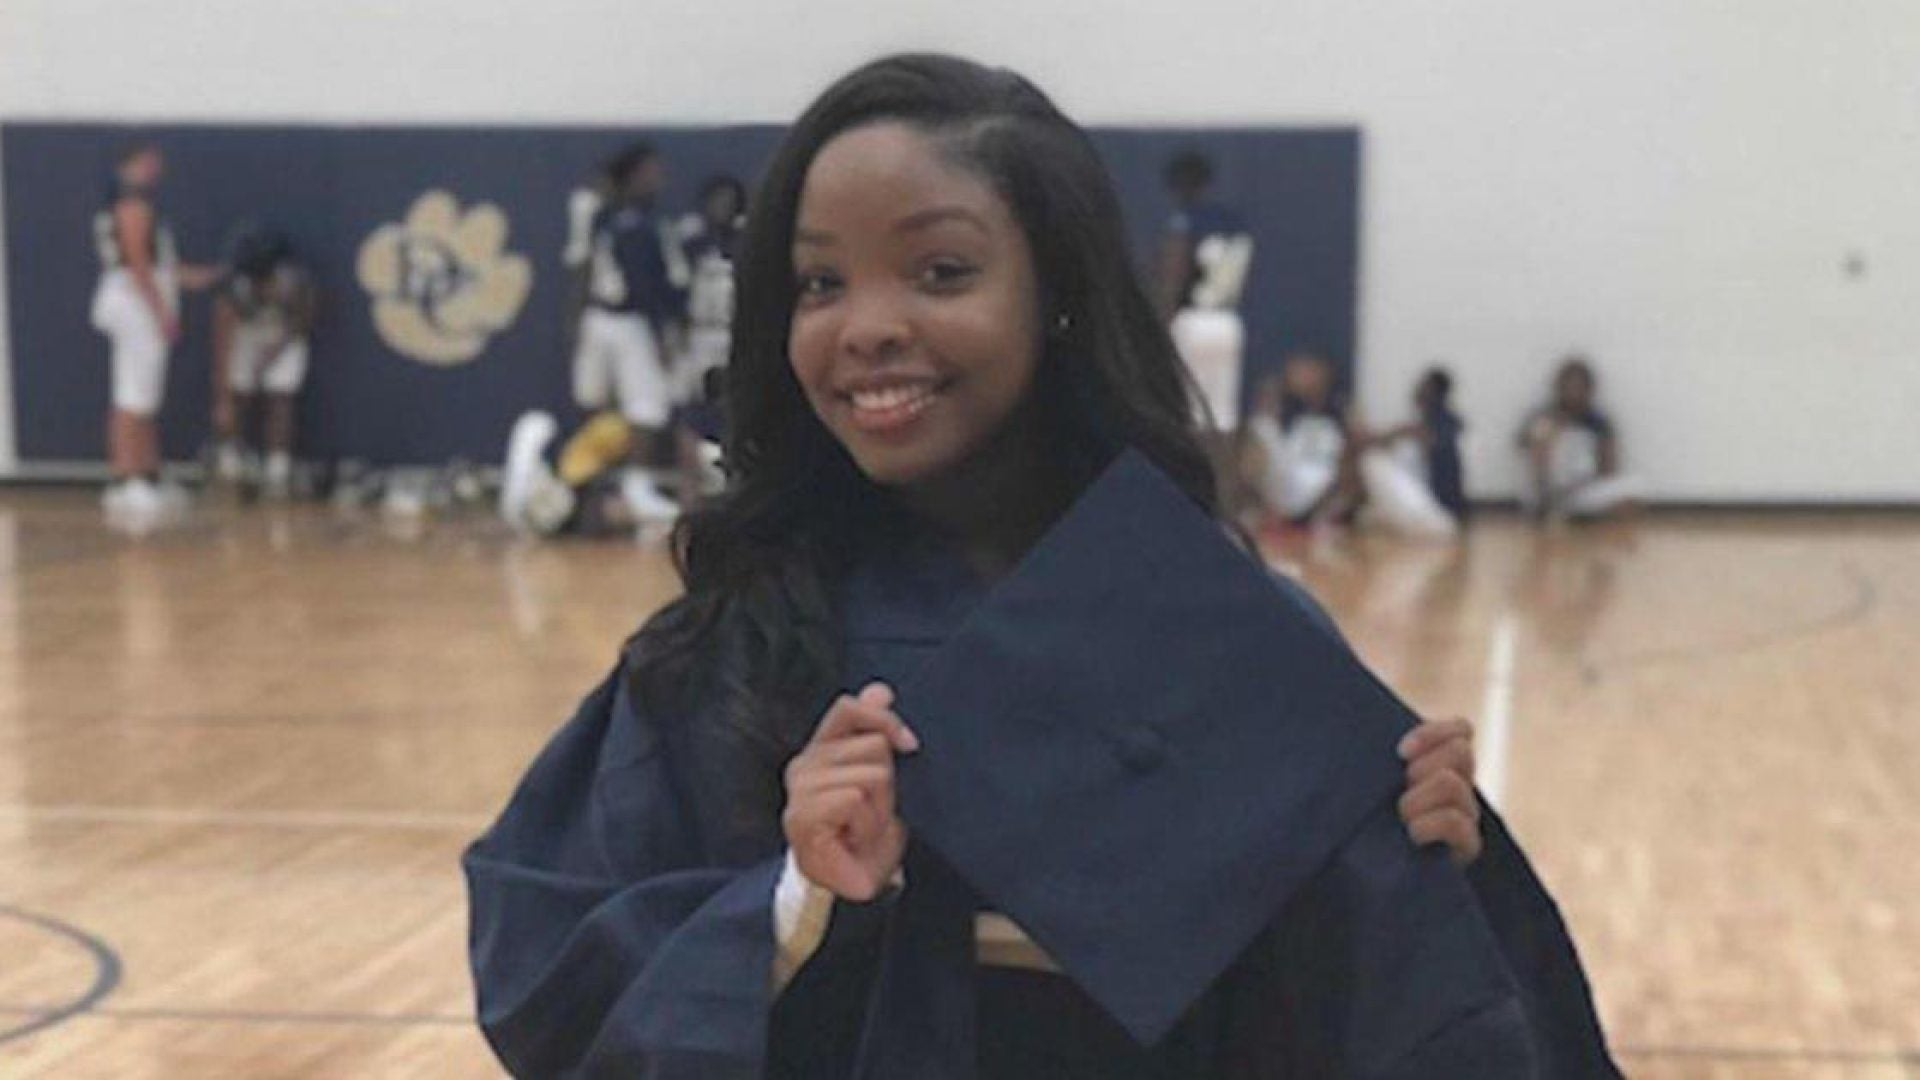 Atlanta Teen Accepted Into 39 Universities, Gains $1.6 million in scholarships